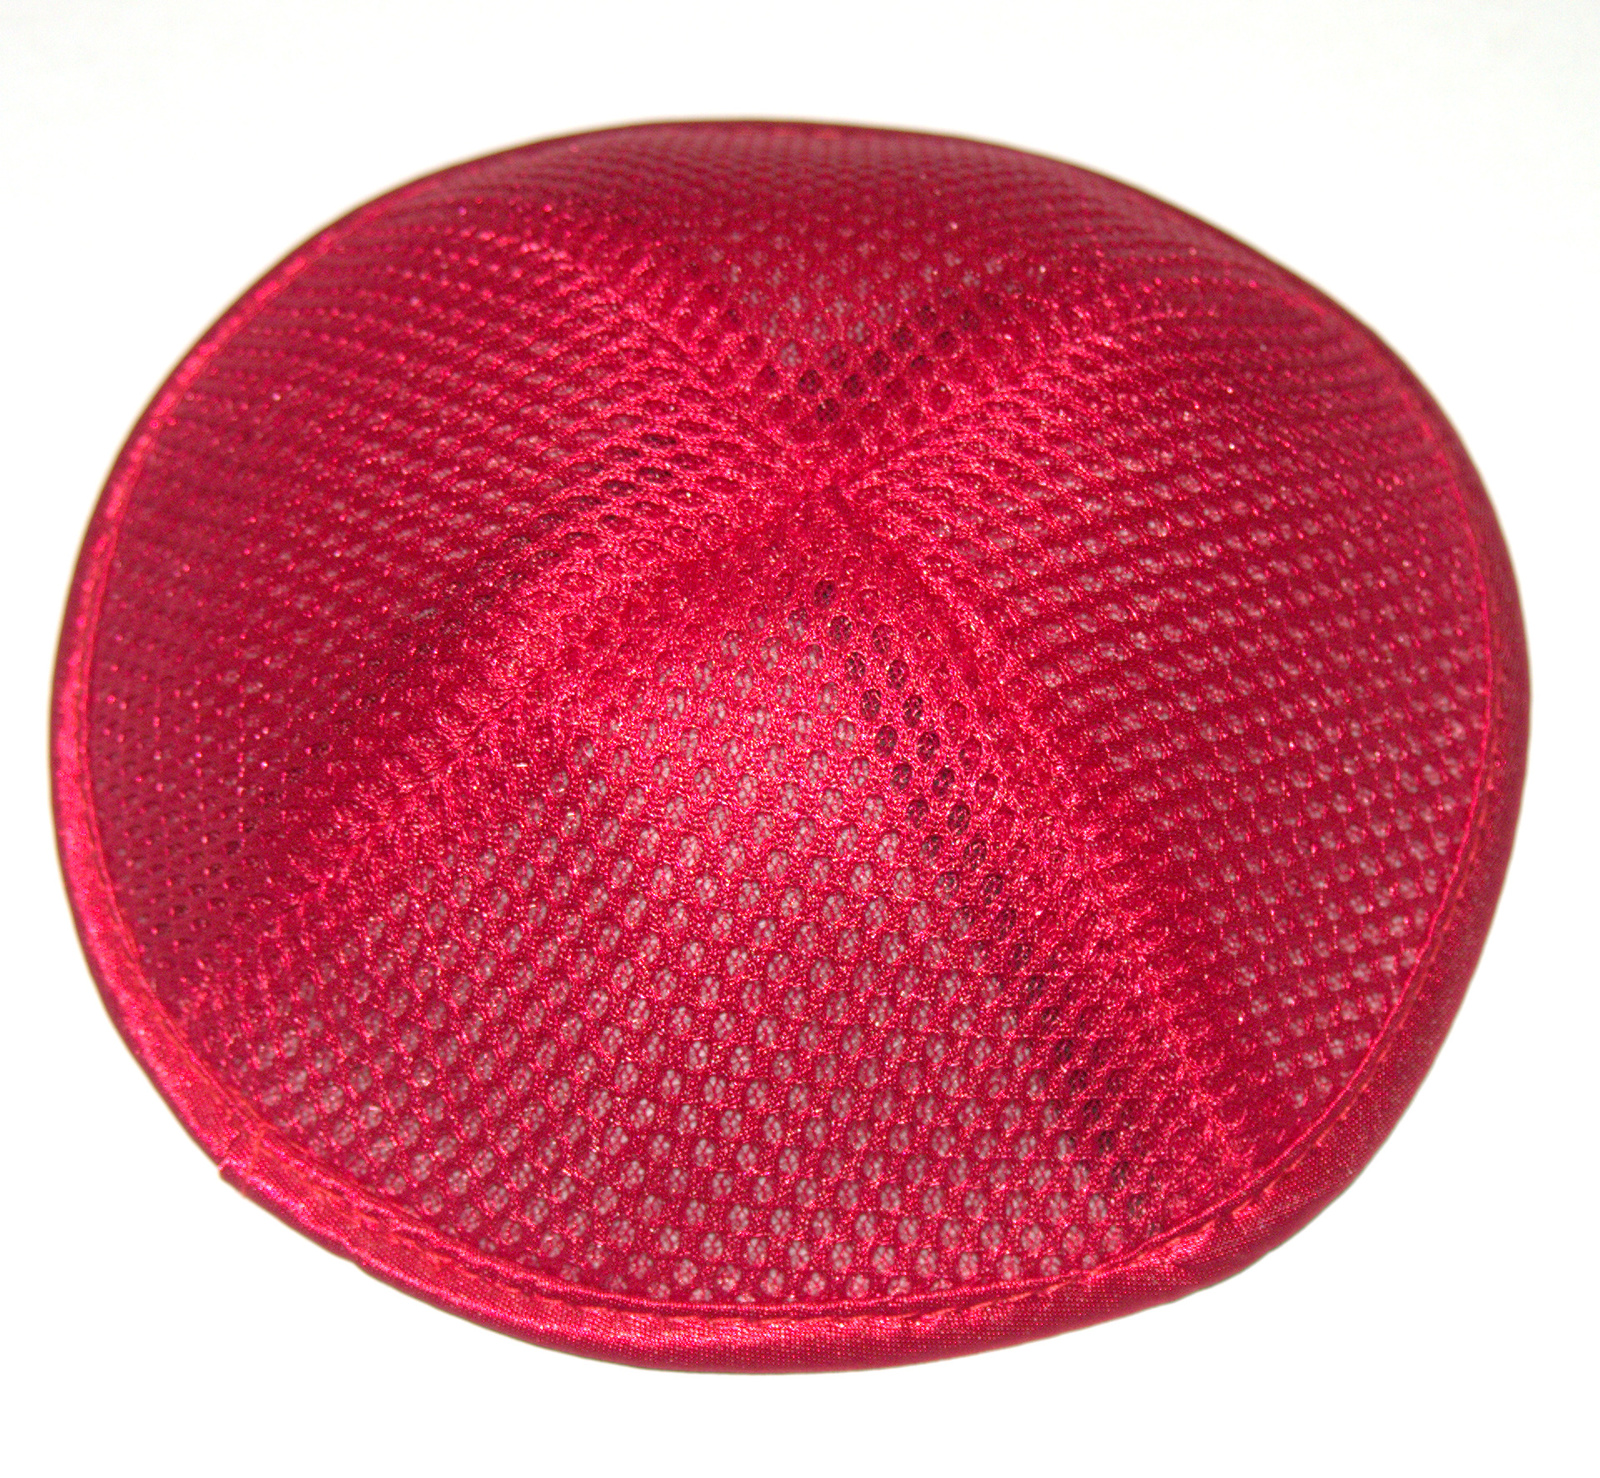 Judaica Dark Red Kippah Mesh Net Fabric Pin Spot 19 cm Israel Jewish Tradition